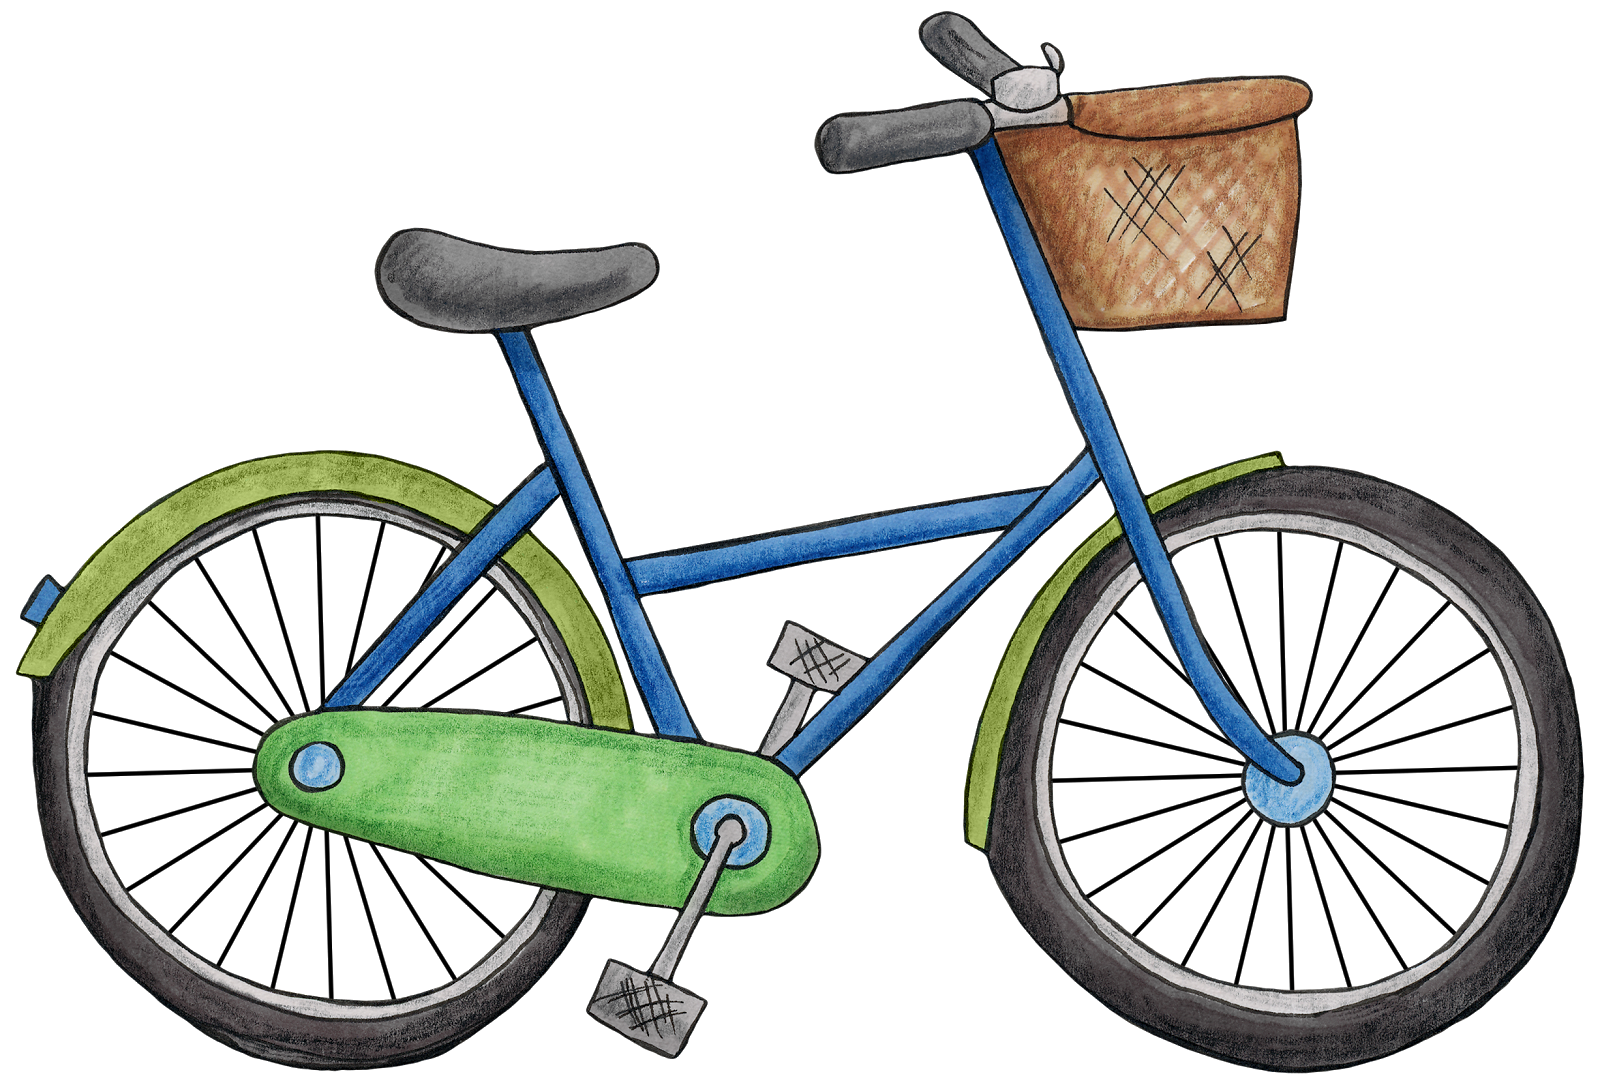 clip art library download Bike clipart. Bicycle png images free.